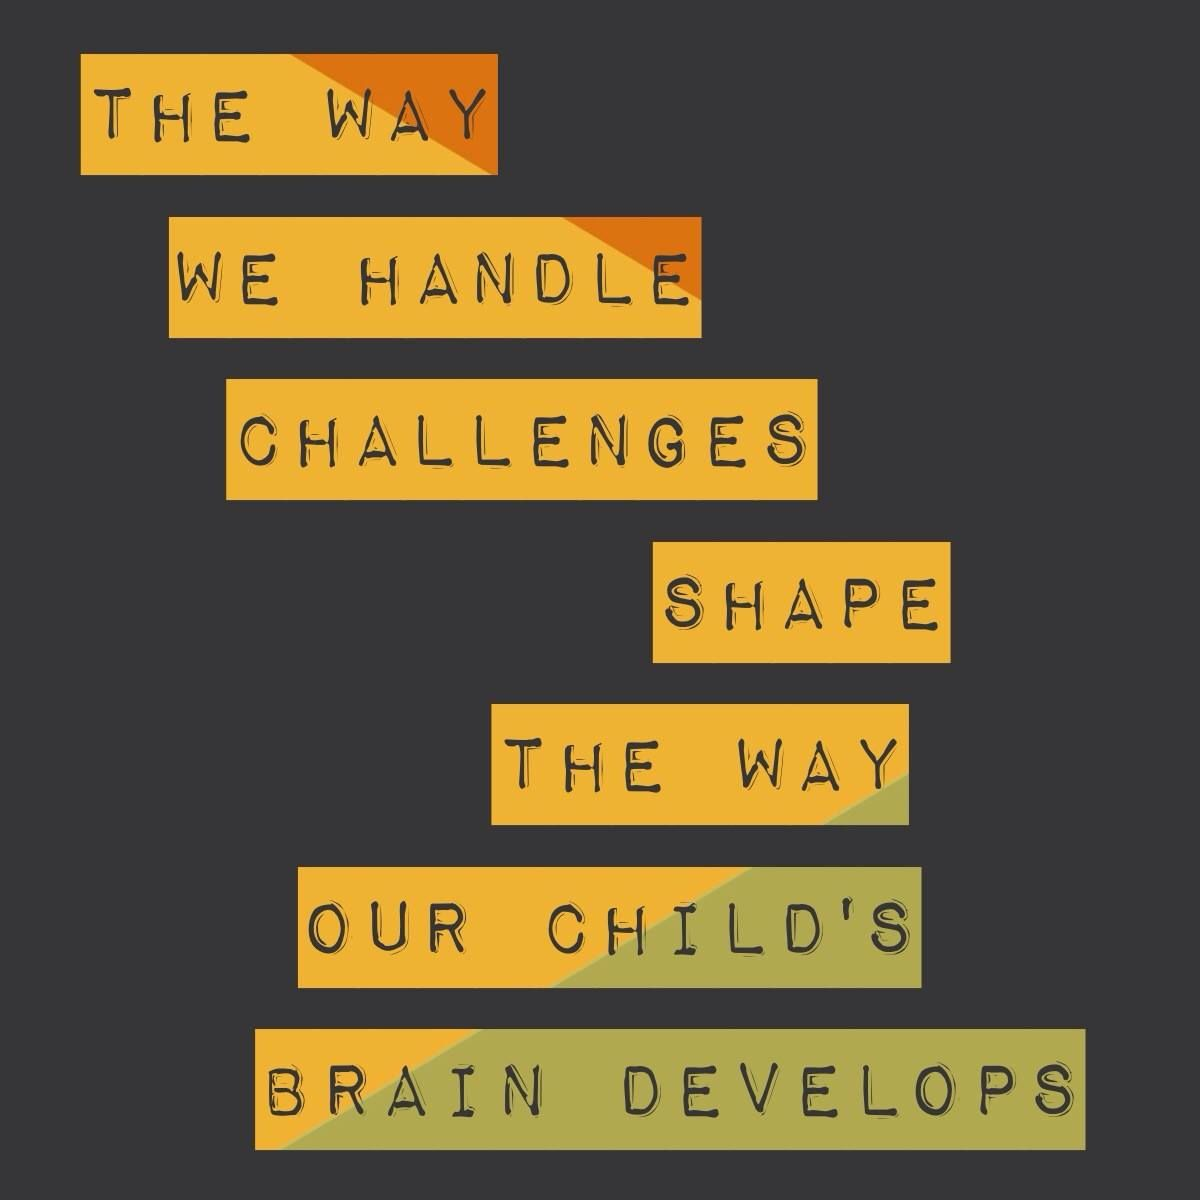 Using Fear Based Discipline With Our Children Stimulates A